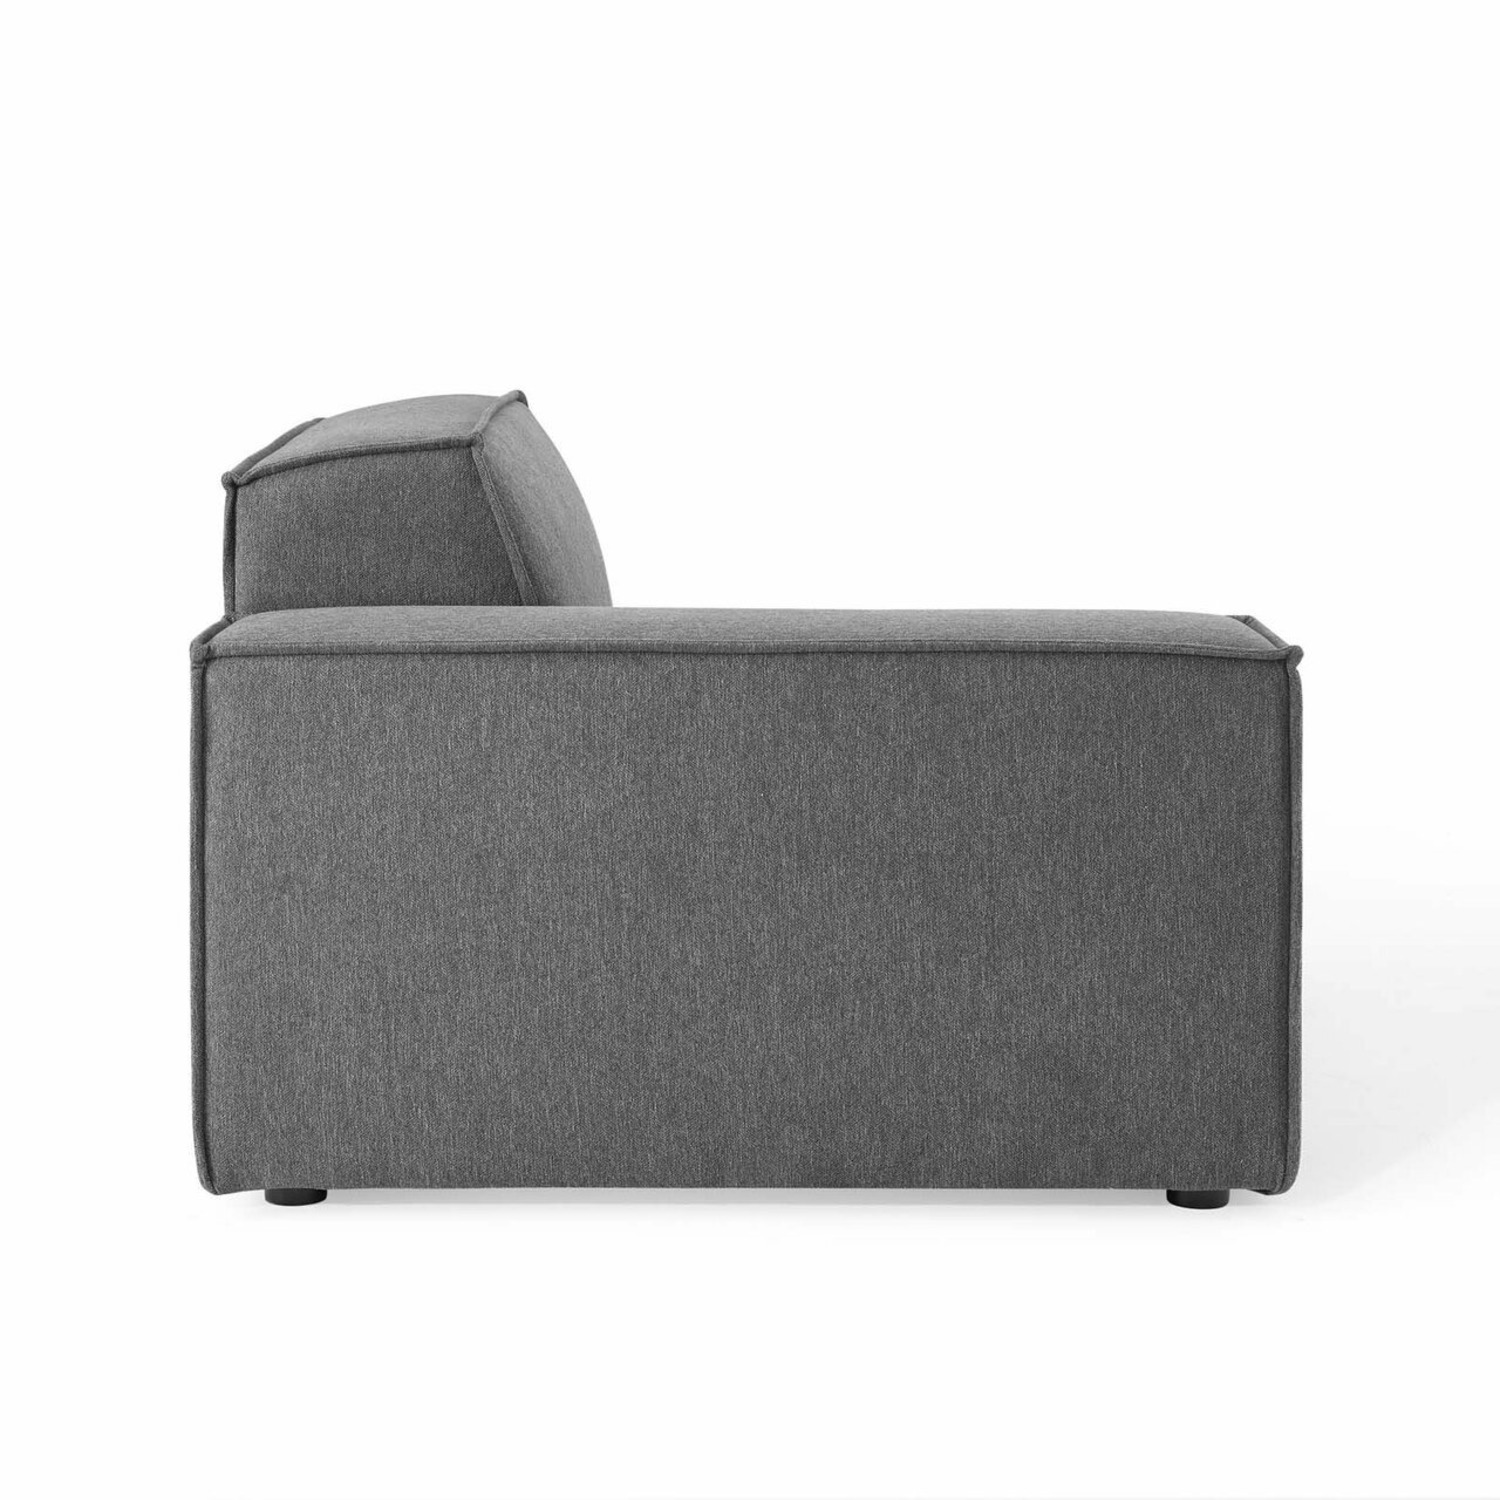 4-Piece Sectional Sofa In Charcoal Fabric Finish - image-5